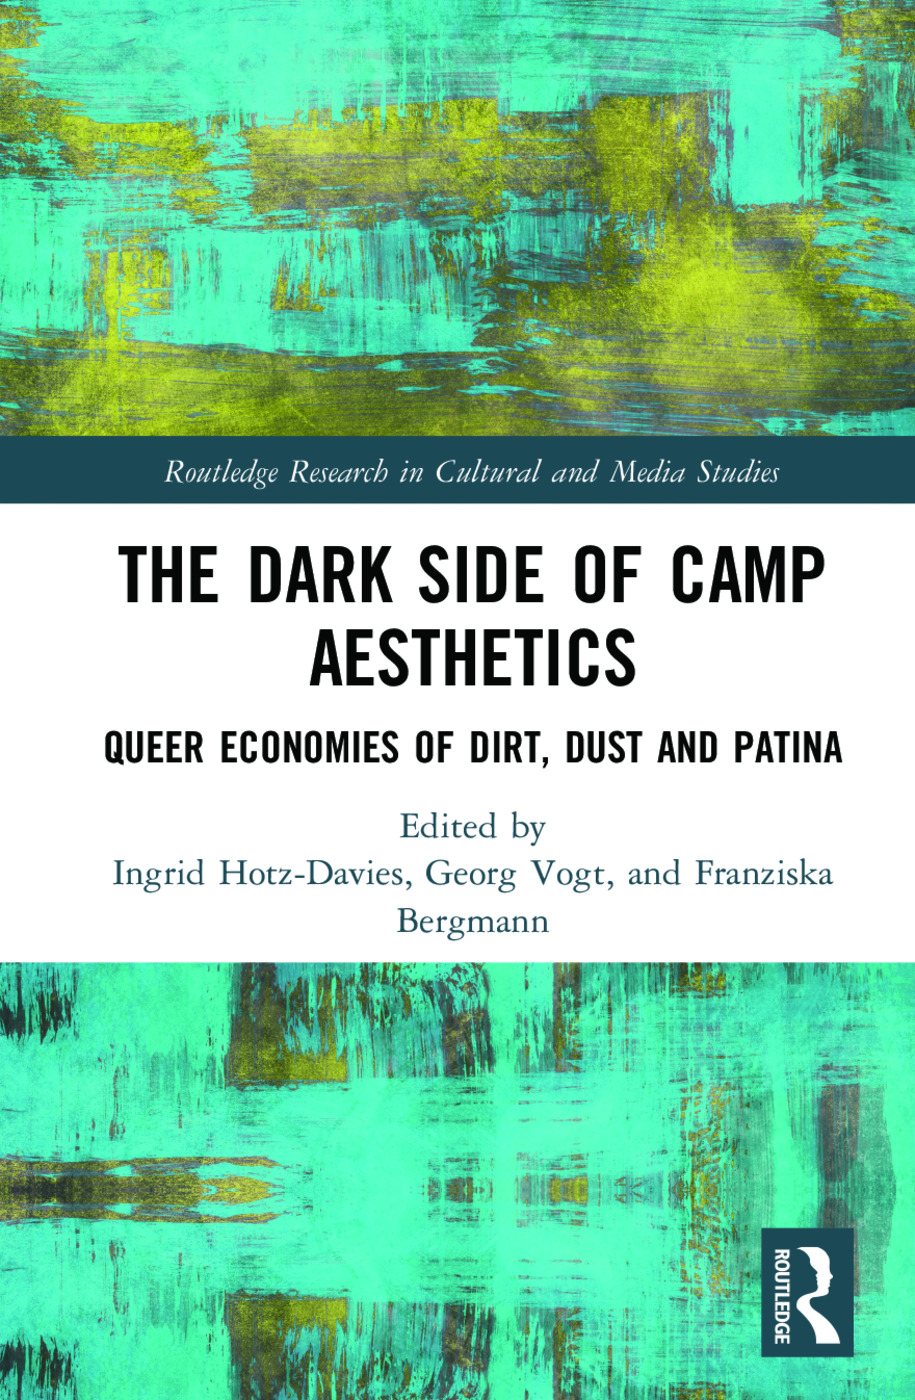 The Dark Side of Camp Aesthetics: Queer Economies of Dirt, Dust and Patina book cover